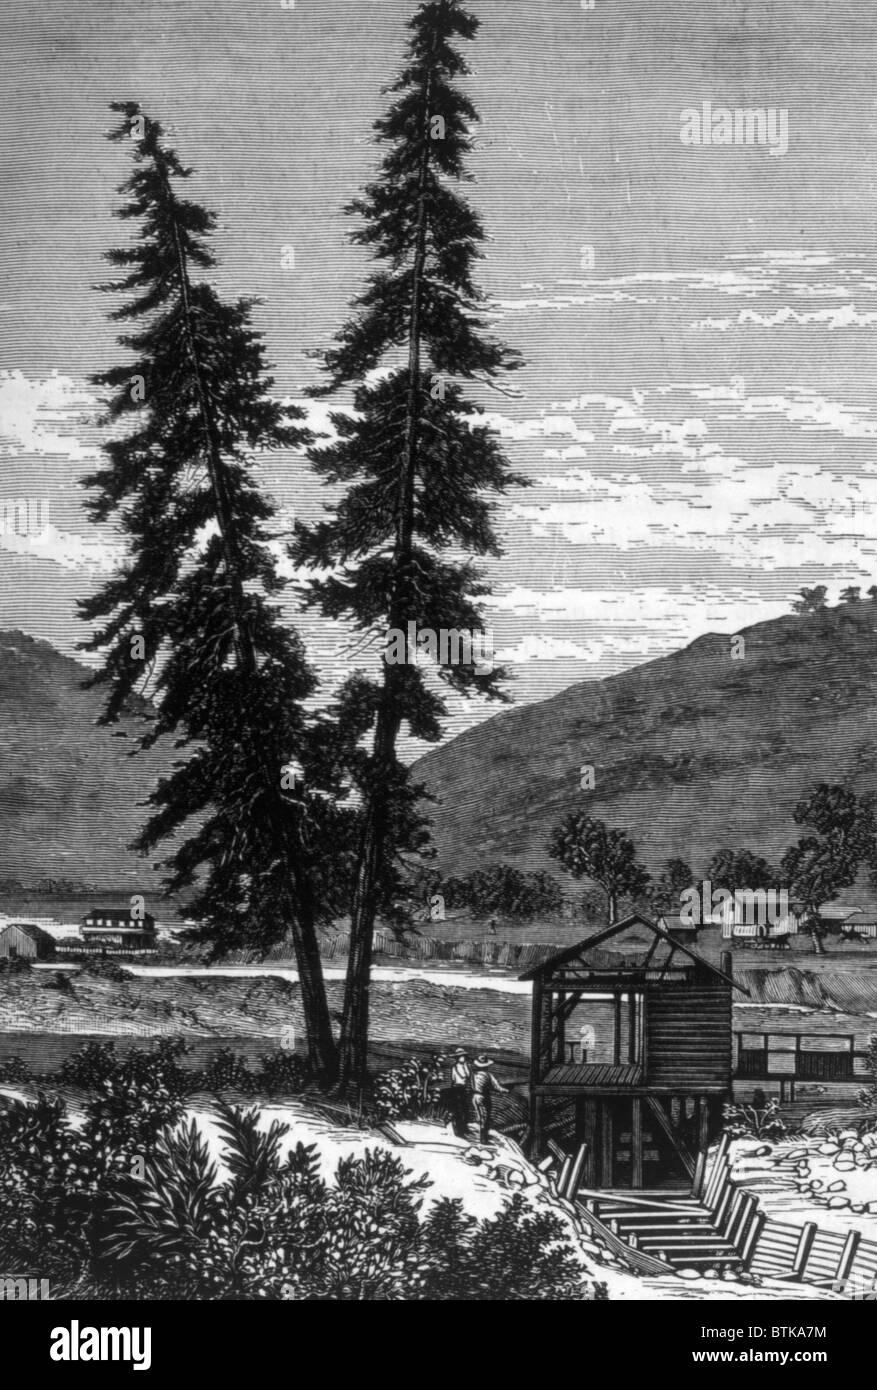 The Gold Rush, Sutter's Mill, California, engraving 1897 - Stock Image